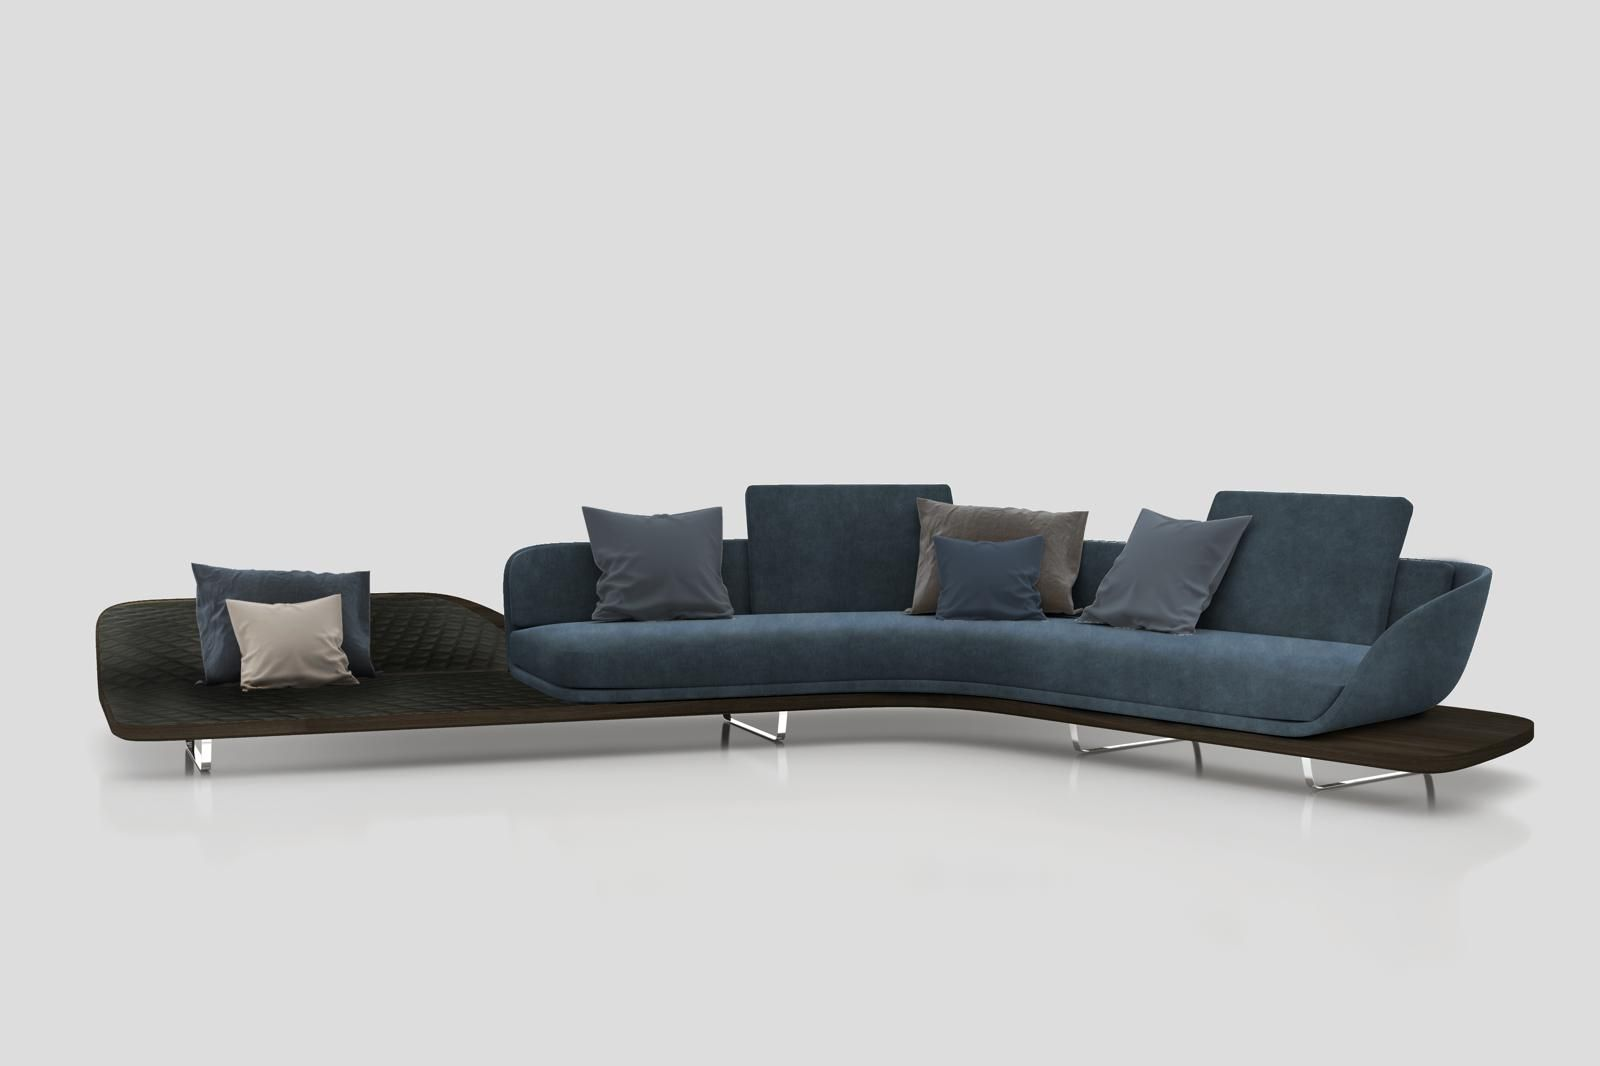 Pininfarina Home Design Segno Sofa Chaise Longue Italian Furniture Modern Luxury Sofa Chaise Sofa